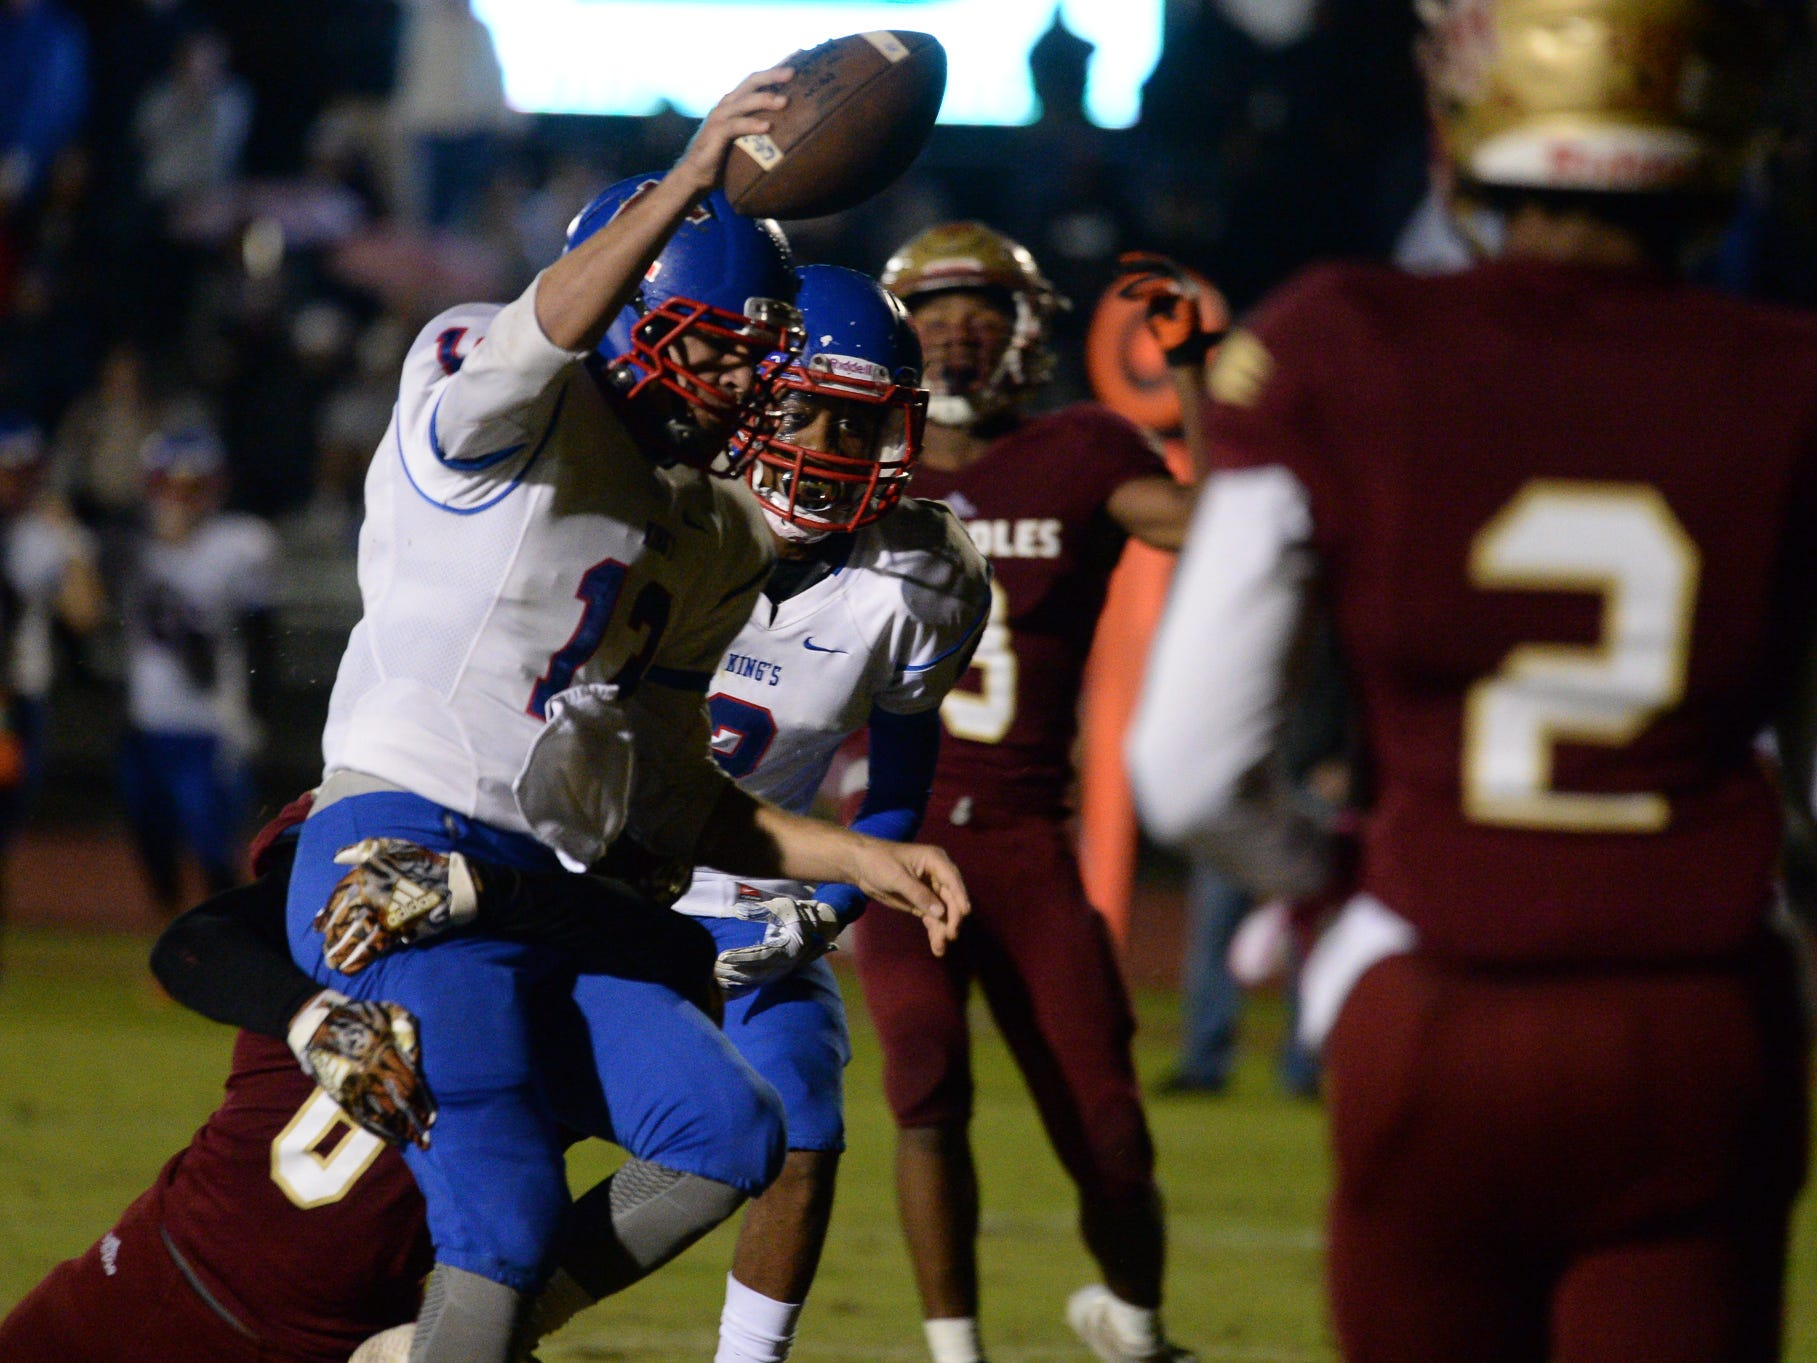 King's Academy's Justin Wake (13) runs for a touchdown during Friday's King's Academy Lions vs. Florida High Seminoles, Class 3A state semifinal, Tallahassee, FL, Nov. 30, 2018.